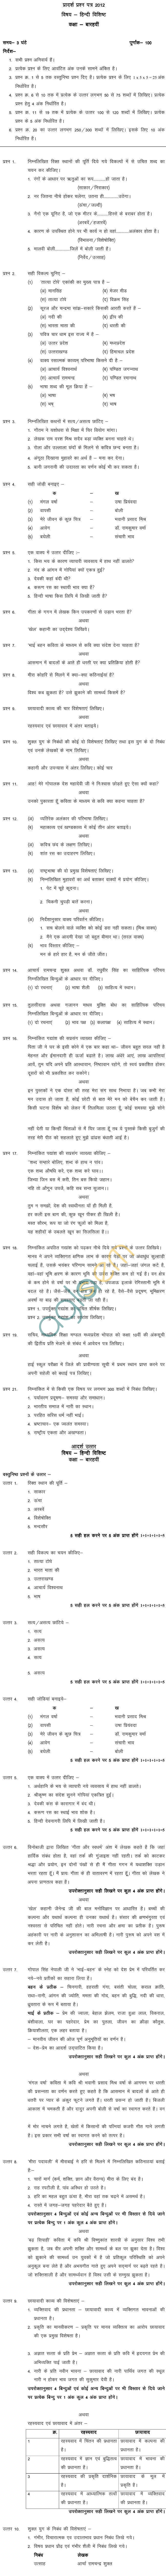 MP Board Class XII Hindi Special Model Questions & Answers - Set 2